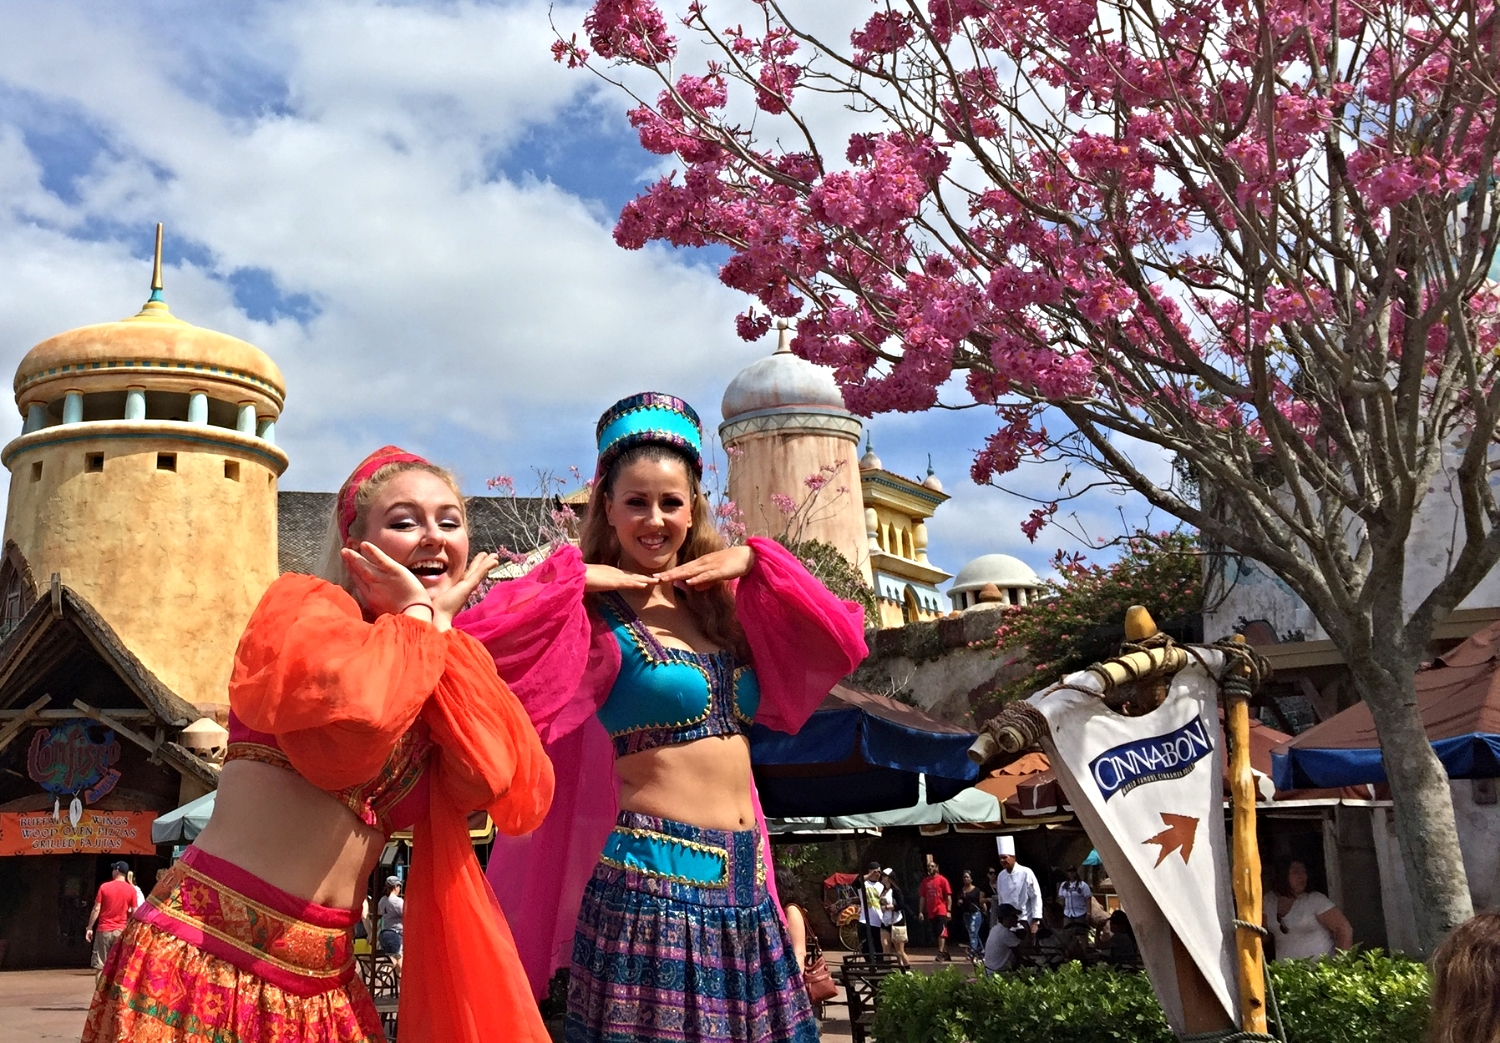 Characters in Port of Entry in Islands of Adventure.